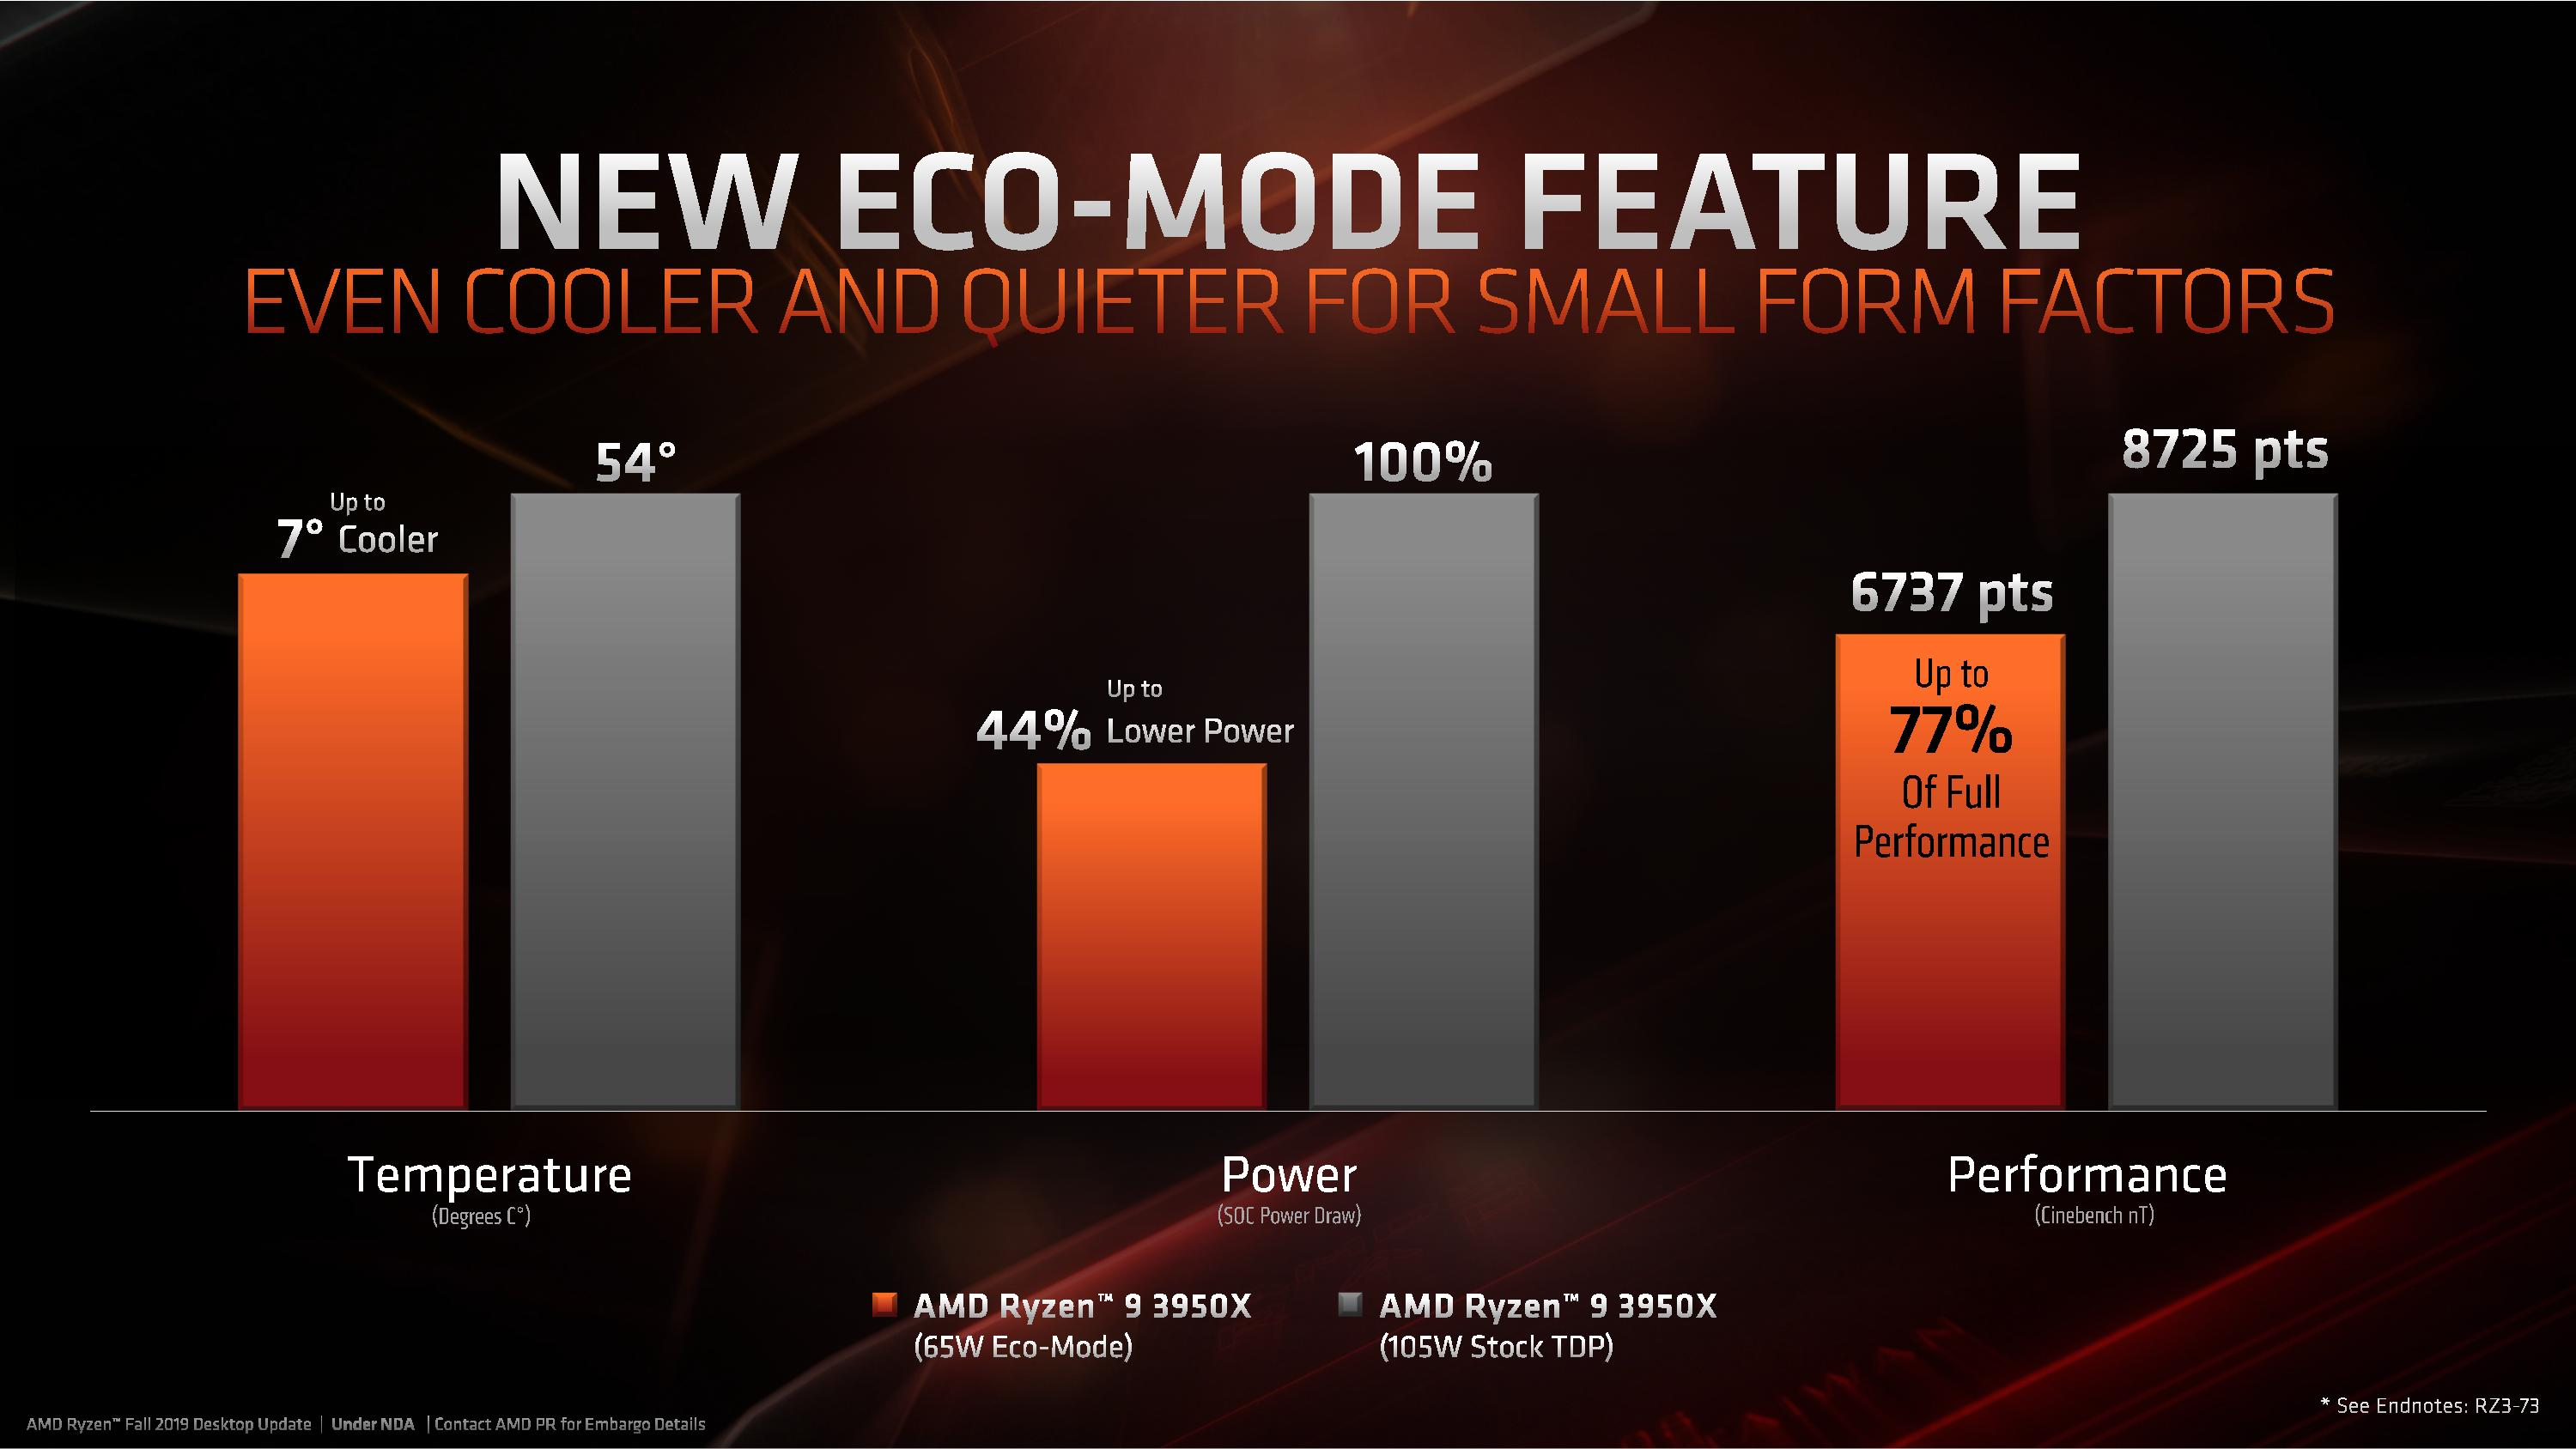 Ryzen 9 3950x Retail On November 25th Amd Q4 16 Core Ryzen 9 3950x Threadripper Up To 32 Core 3970x Coming November 25th